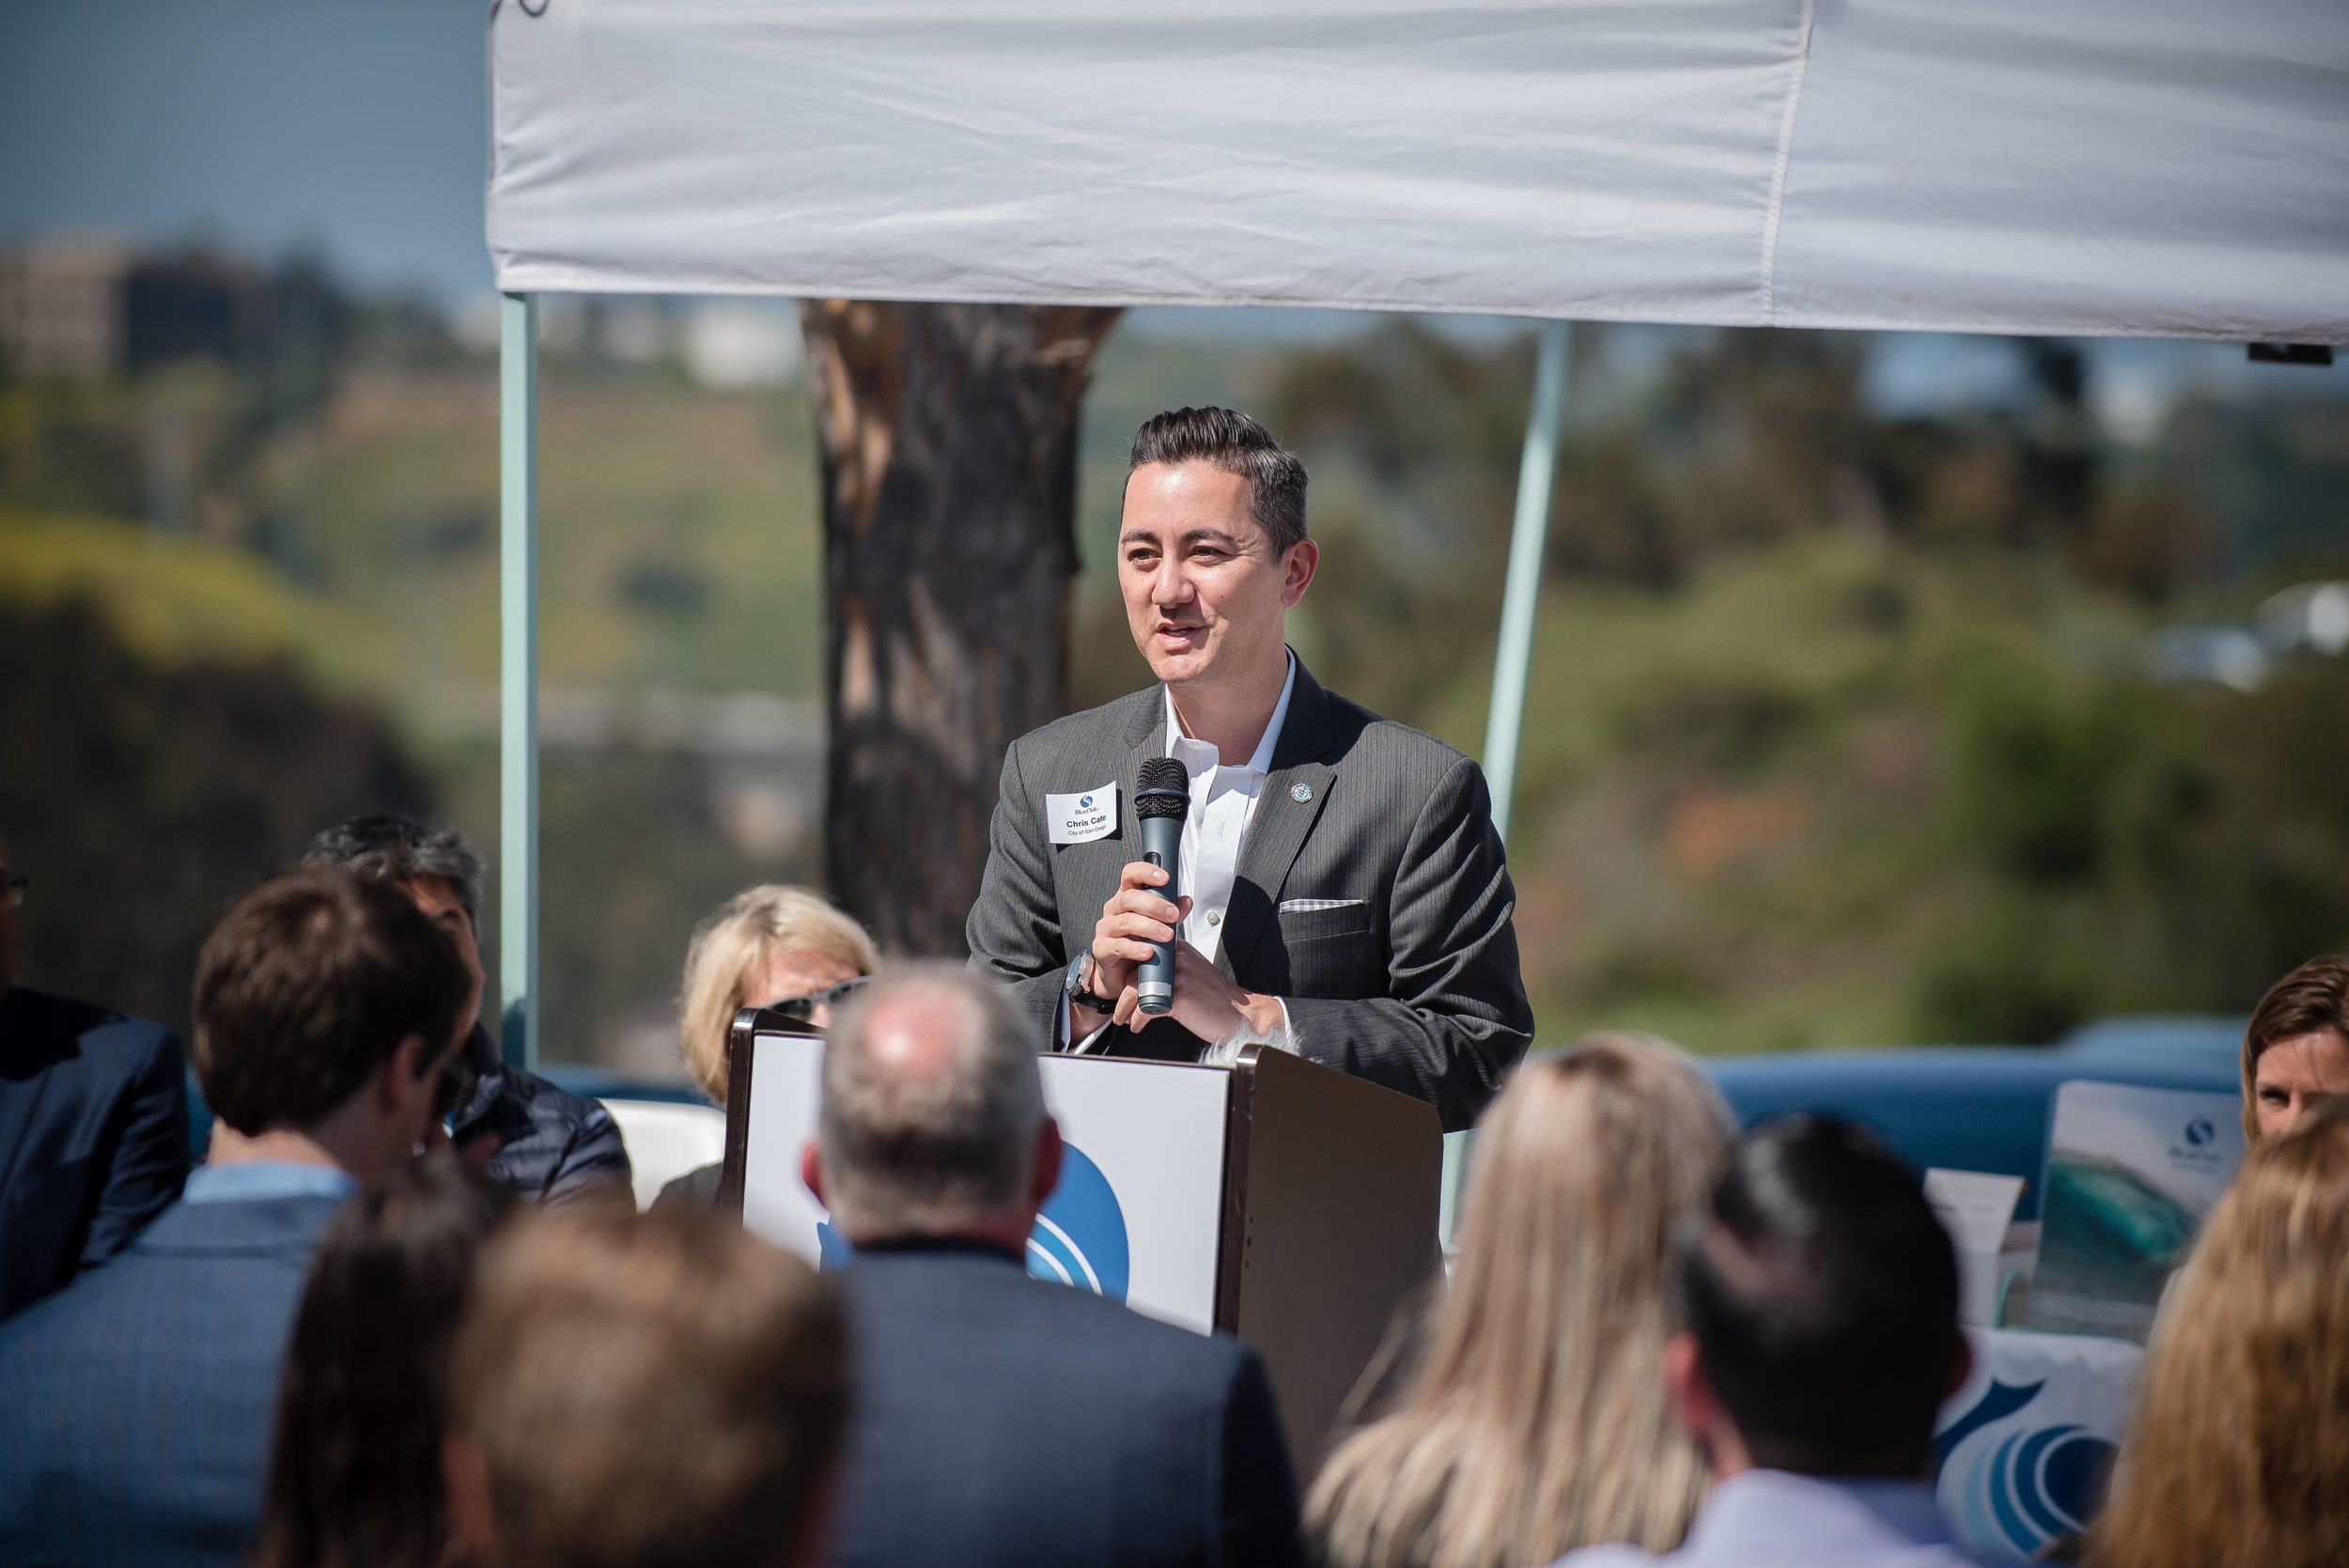 Councilmember Chris Cate addressing the crowd at the BlueNalu Ribbon Cutting Ceremony, Earth Day, April 22, 2019.